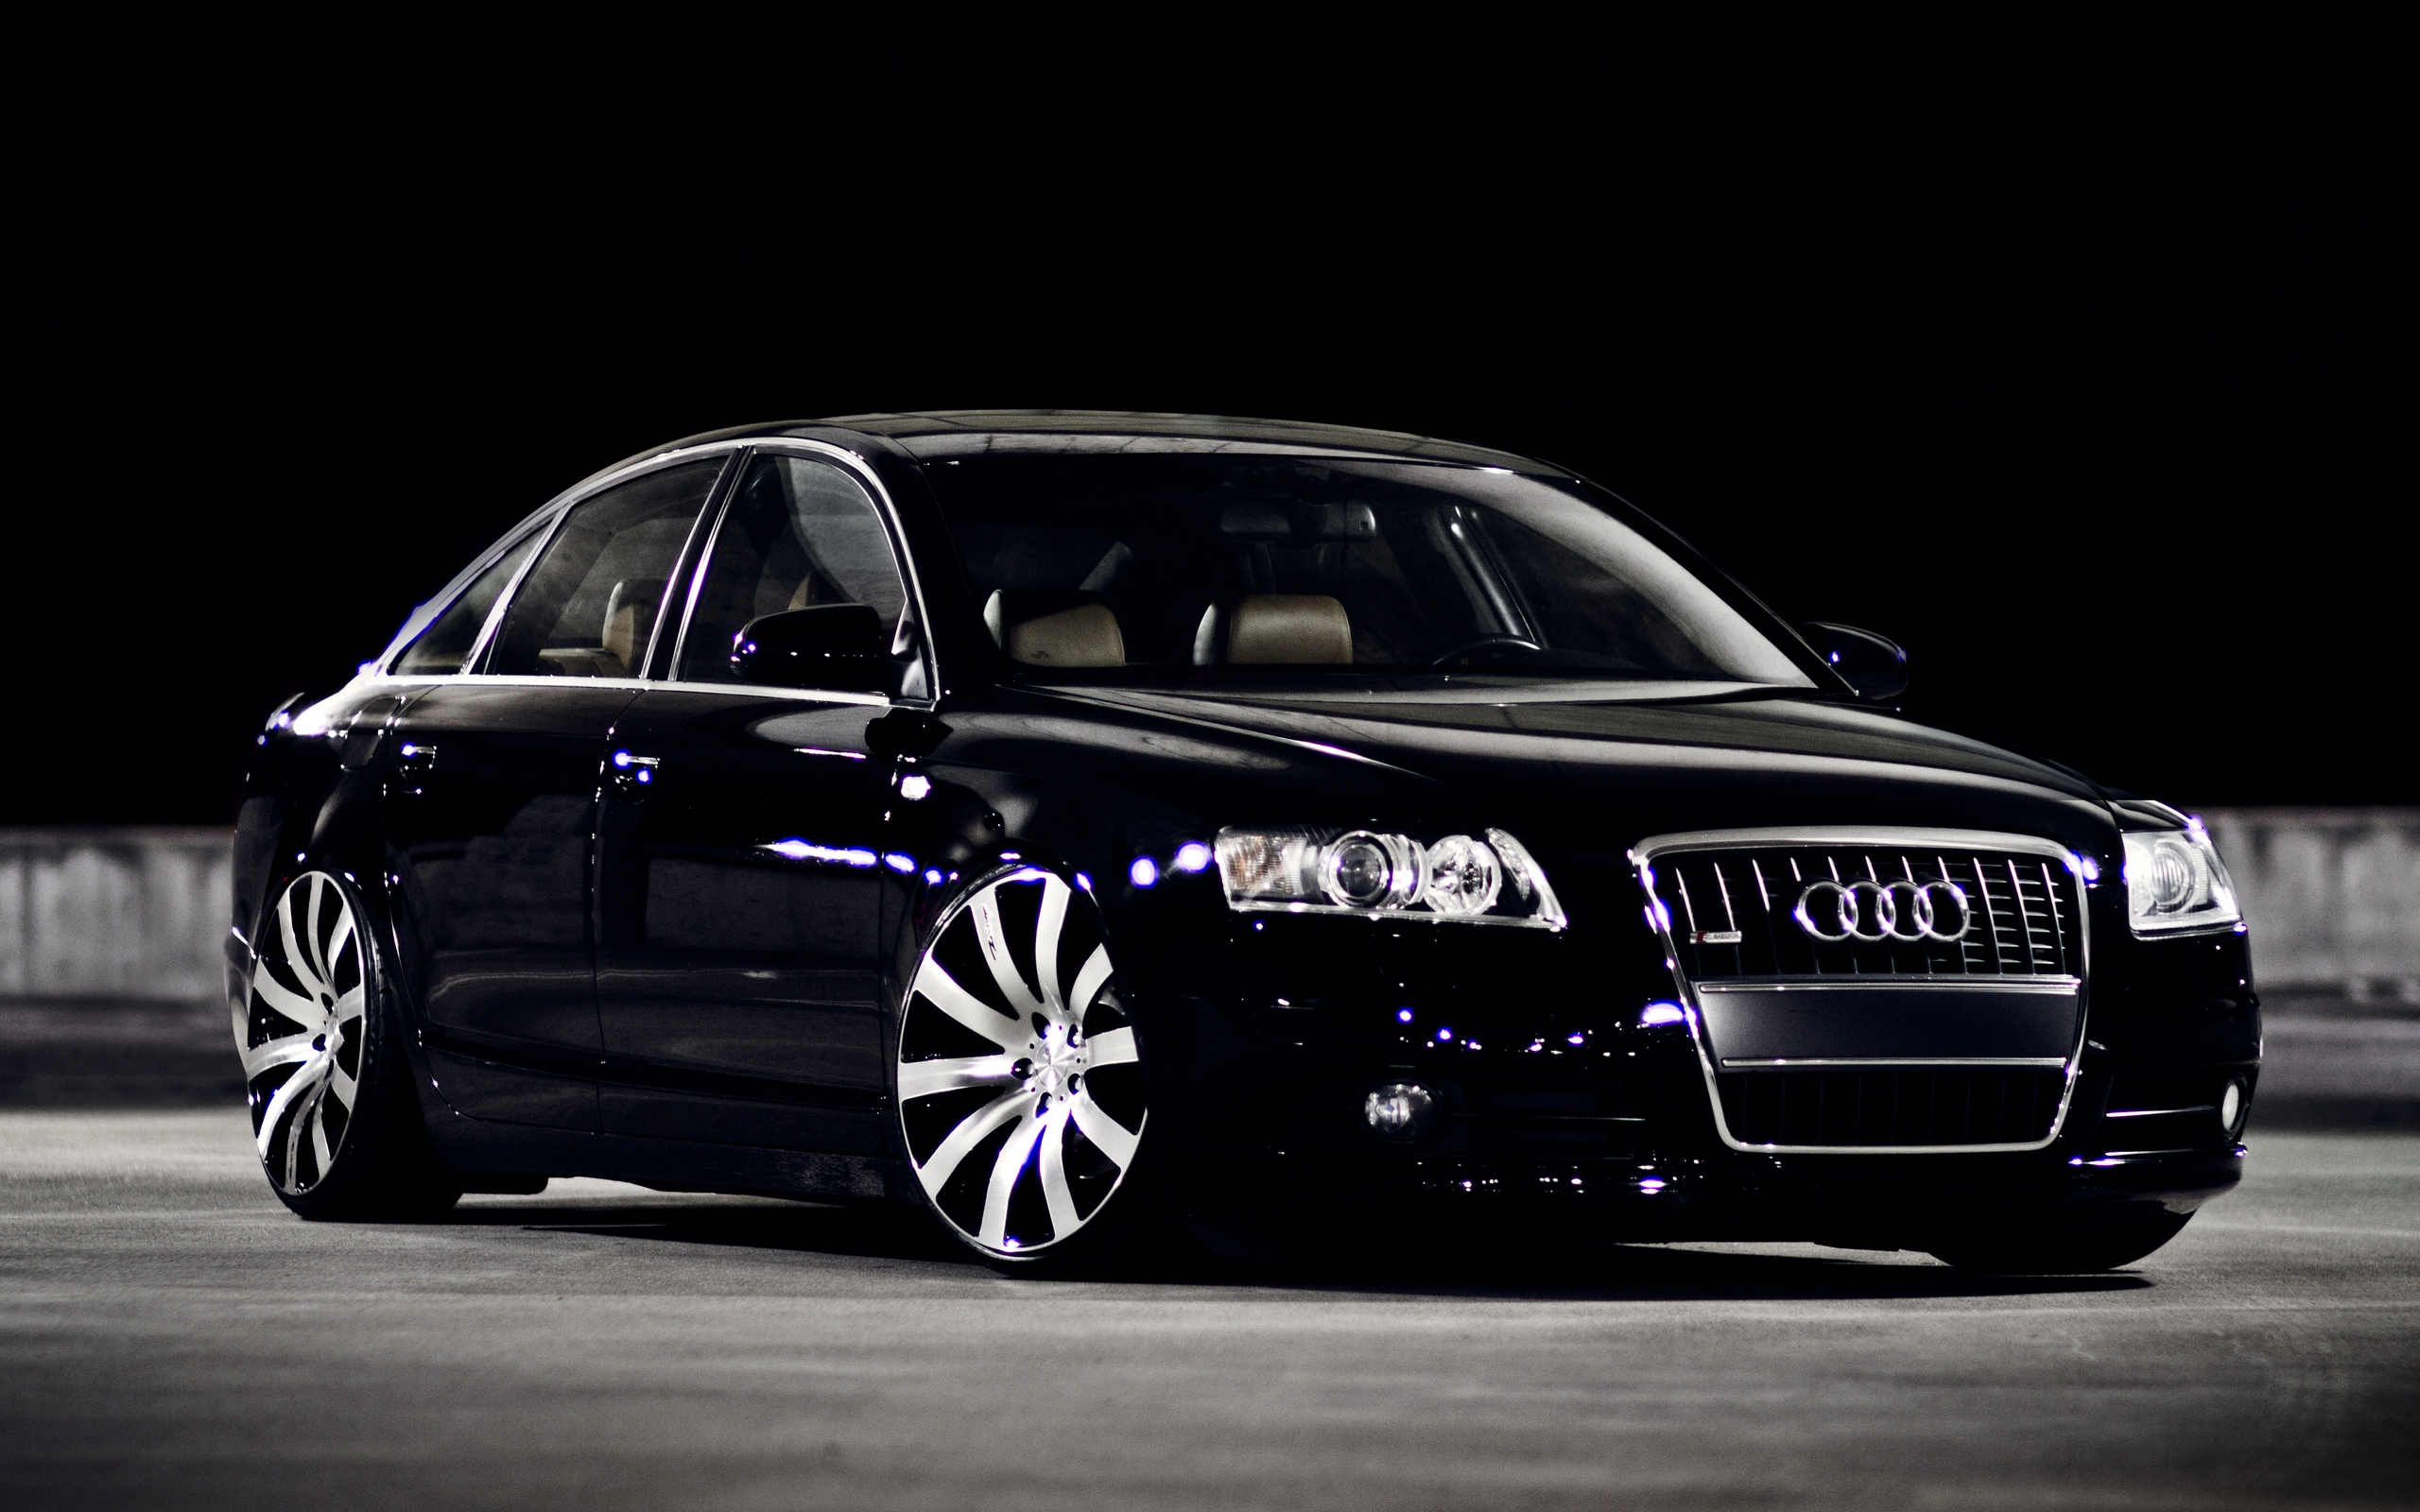 41 Audi Wallpaper Downloads On Wallpapersafari